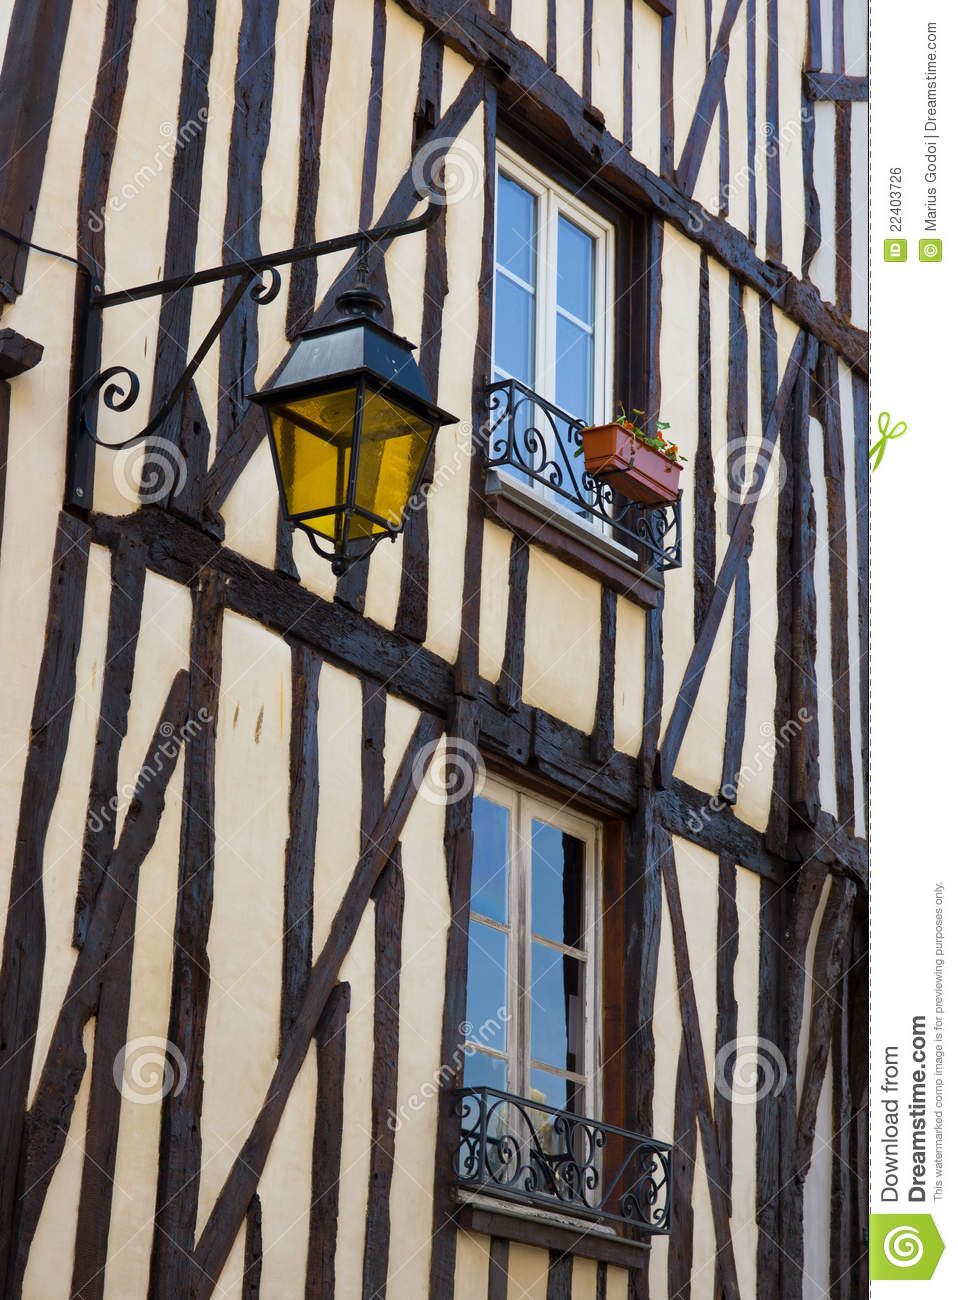 Rennes 39 s architecture royalty free stock image image for Architecture rennes